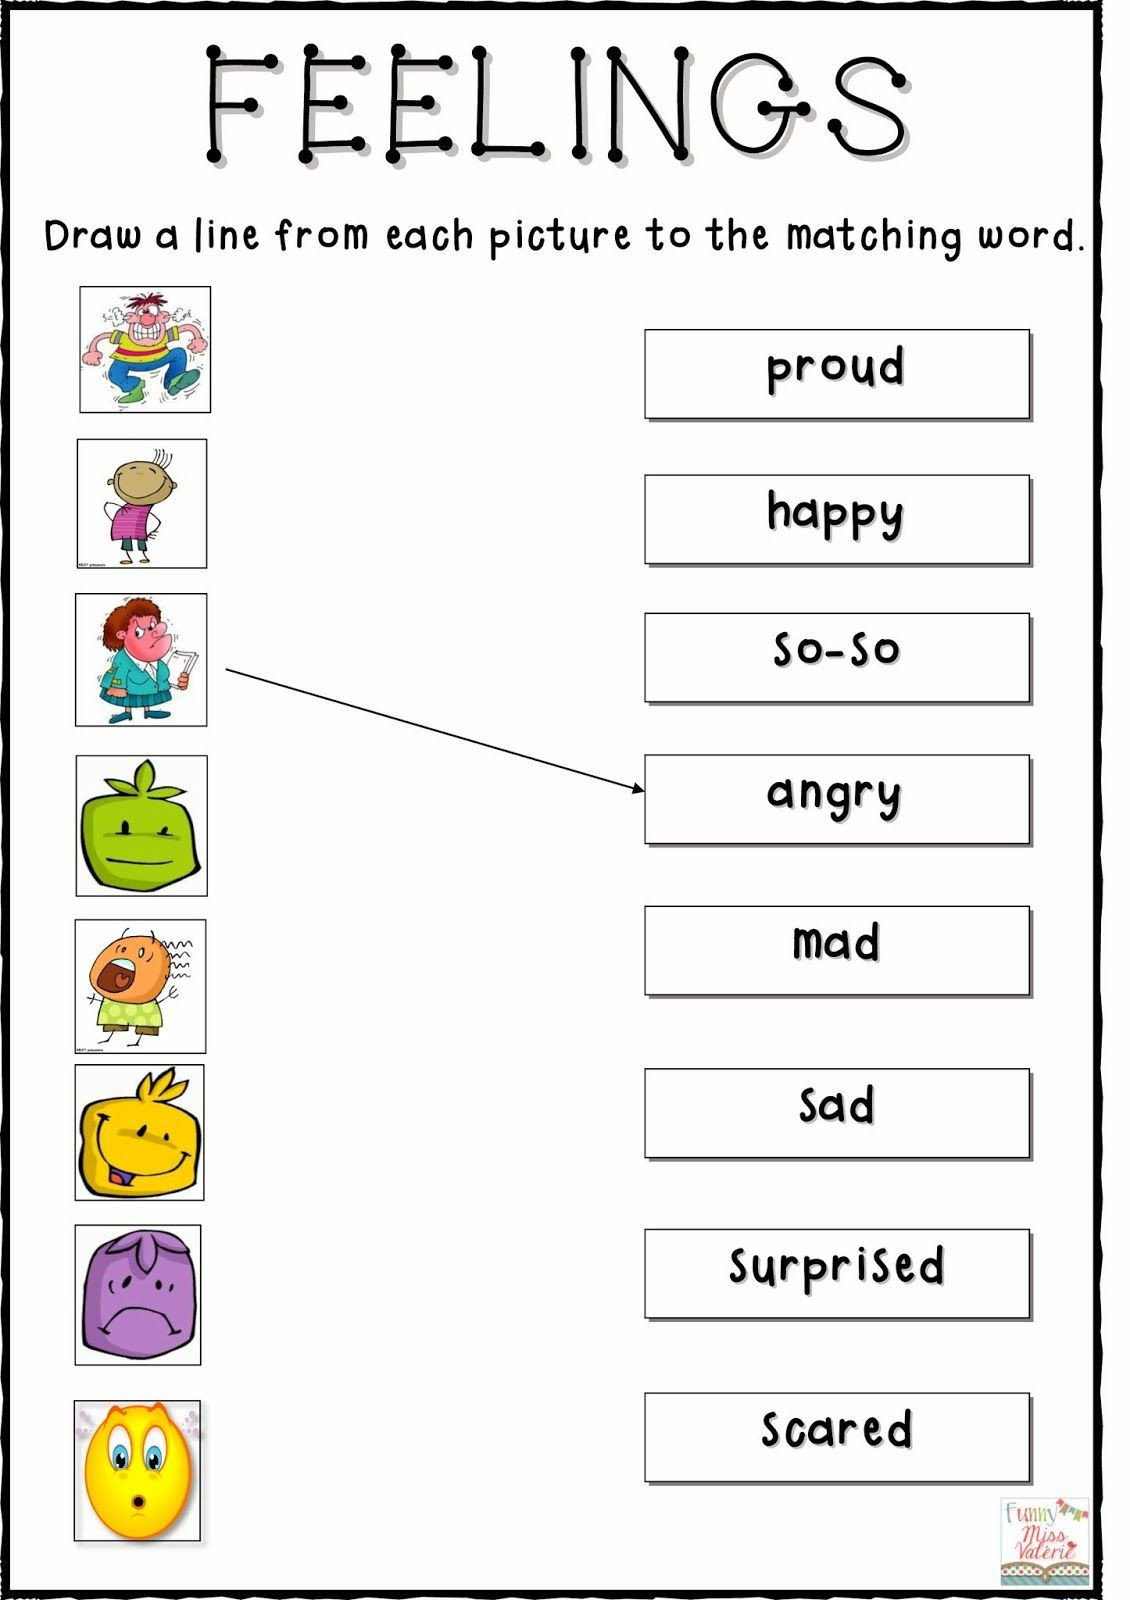 Feelings Worksheets for Kids My Feelings Worksheets In 2020